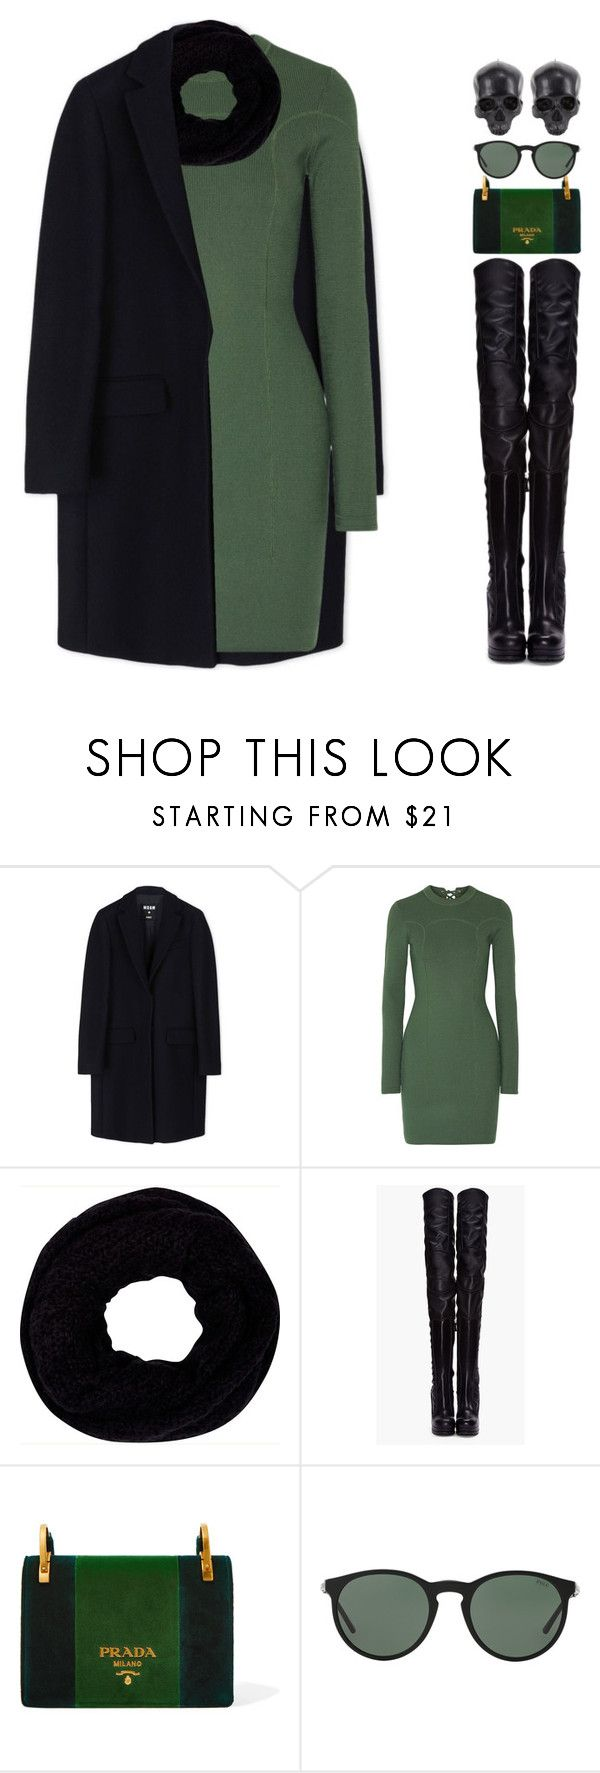 """""""6323"""" by tiffanyelinor ❤ liked on Polyvore featuring MSGM, 3.1 Phillip Lim, River Island, Versus, Prada, Polo Ralph Lauren and D.L. & Co."""